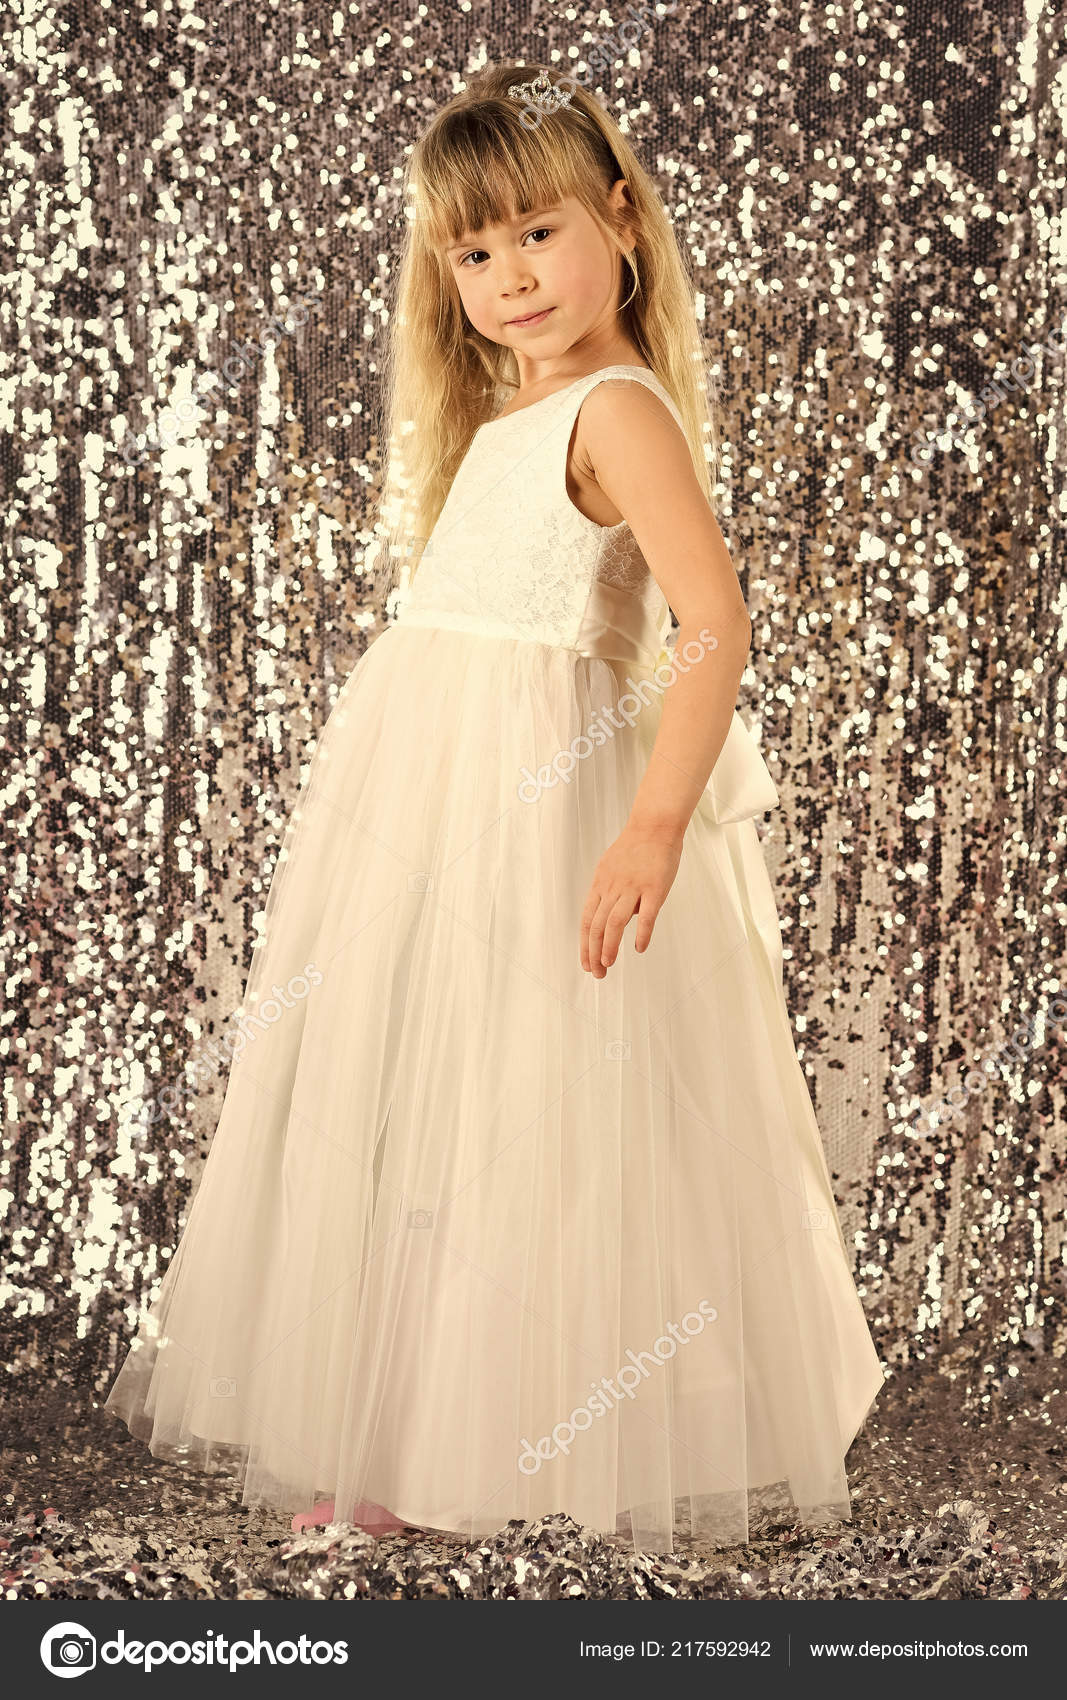 d248339d4840 Elegance and stylish look. elegance, little girl in dress — Stock Photo